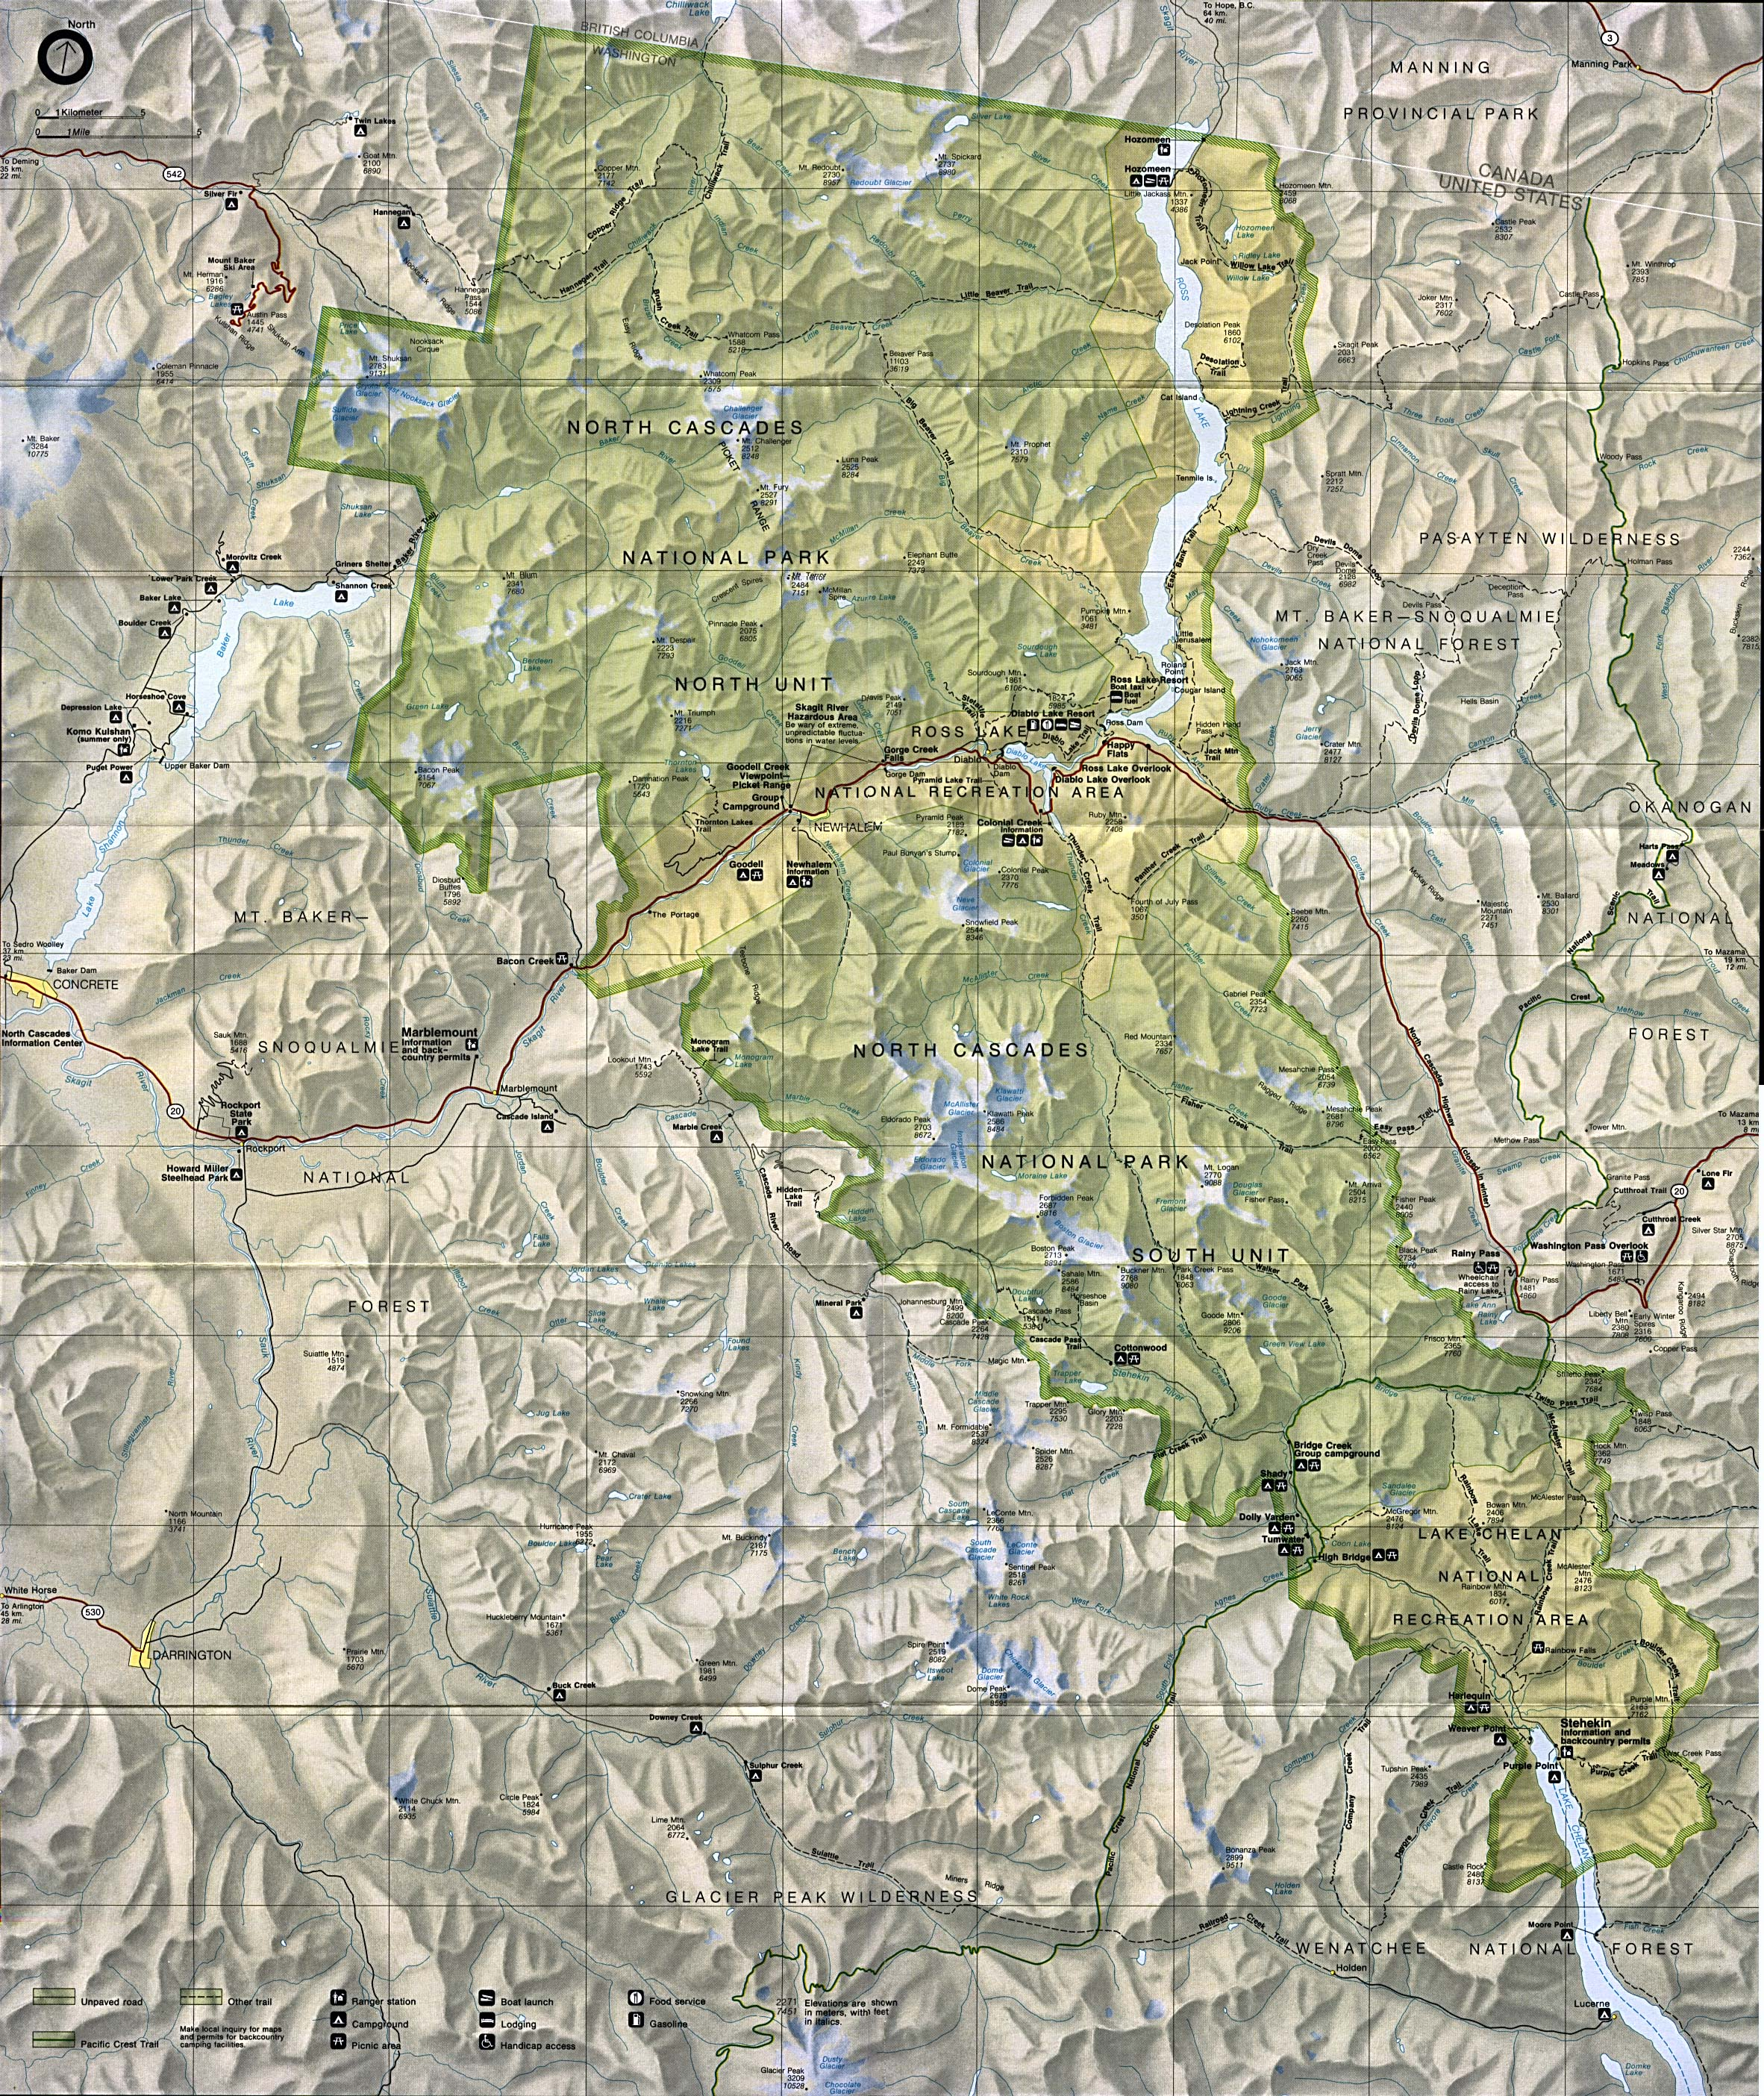 Mapa del Parque Nacional North Cascades, Washington, Estados Unidos